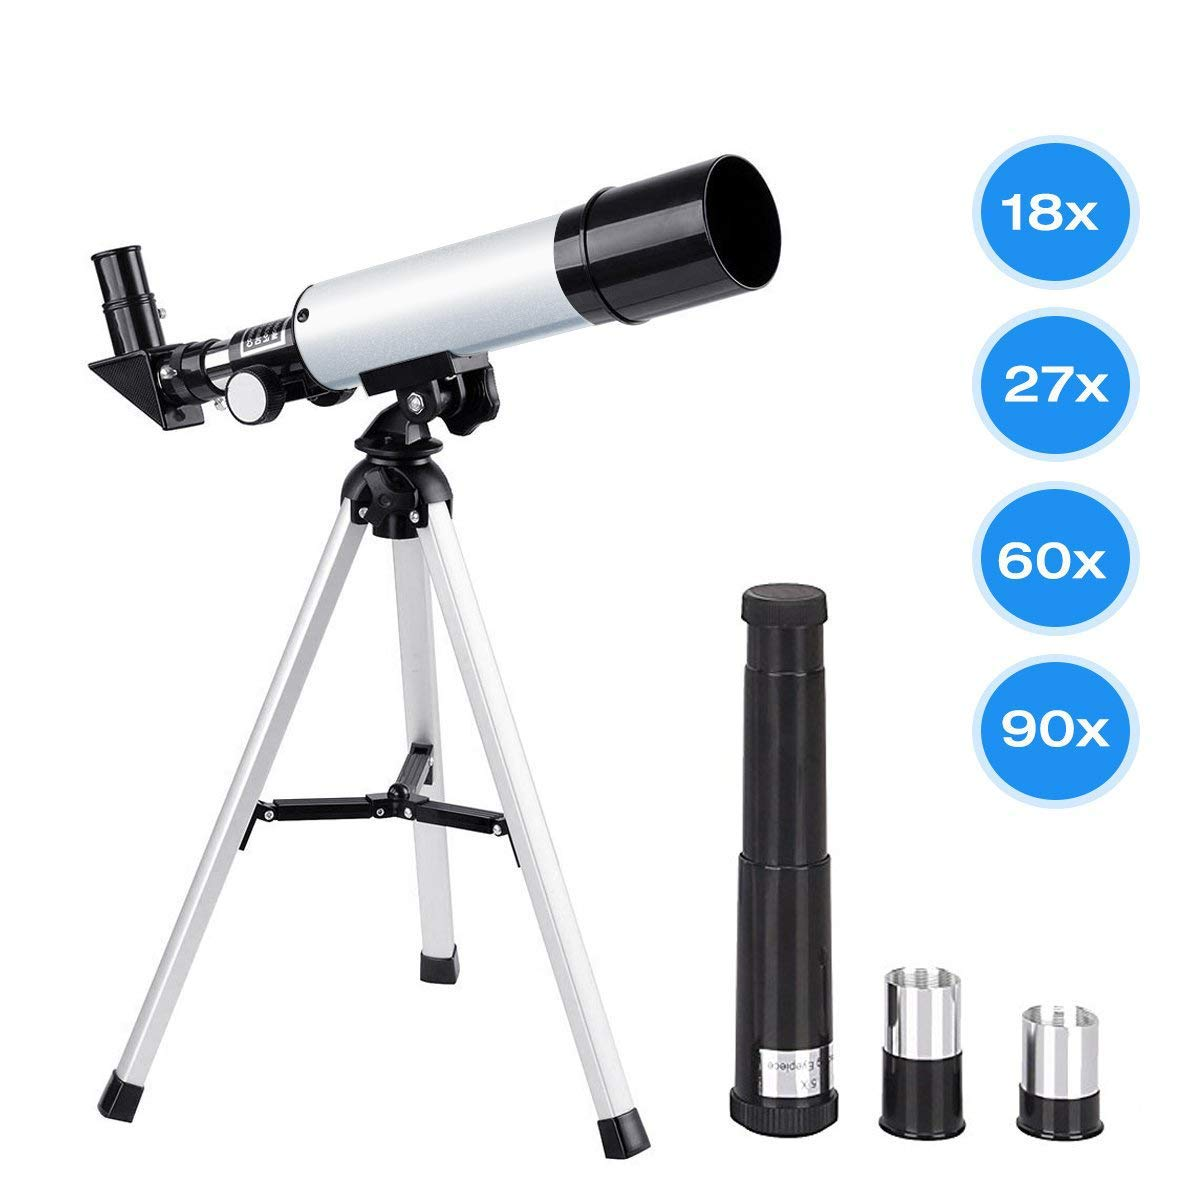 Manfore Kids Telescopes, 90X Science Astronomical Telescope Tripod 2 Magnification Eyepieces, Kids Science Telescope Educational Learning Toy Sky Star Gazing & Birds Watching